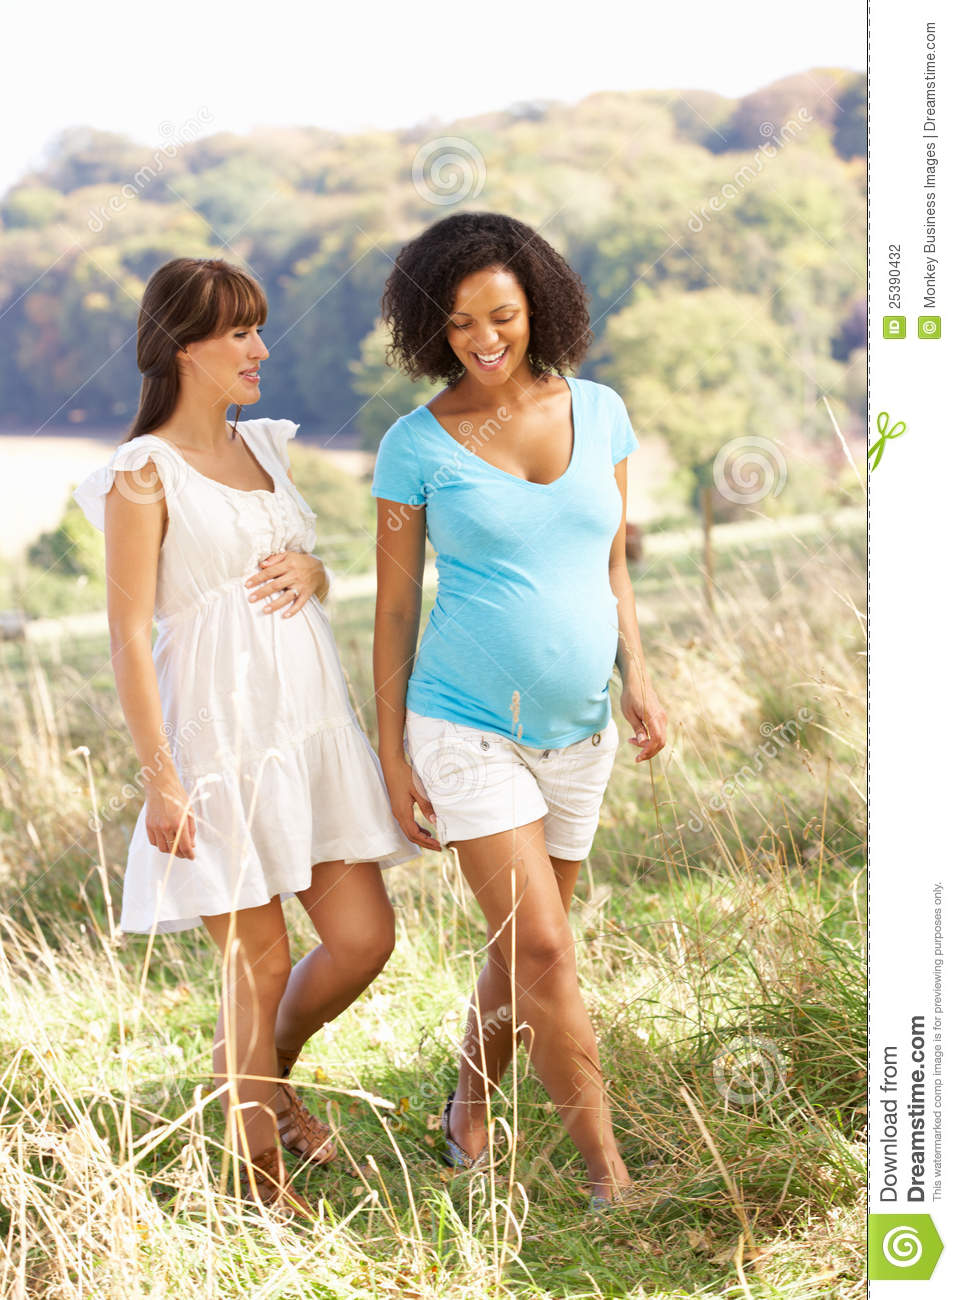 Pregnant women outdoors in countryside walking.